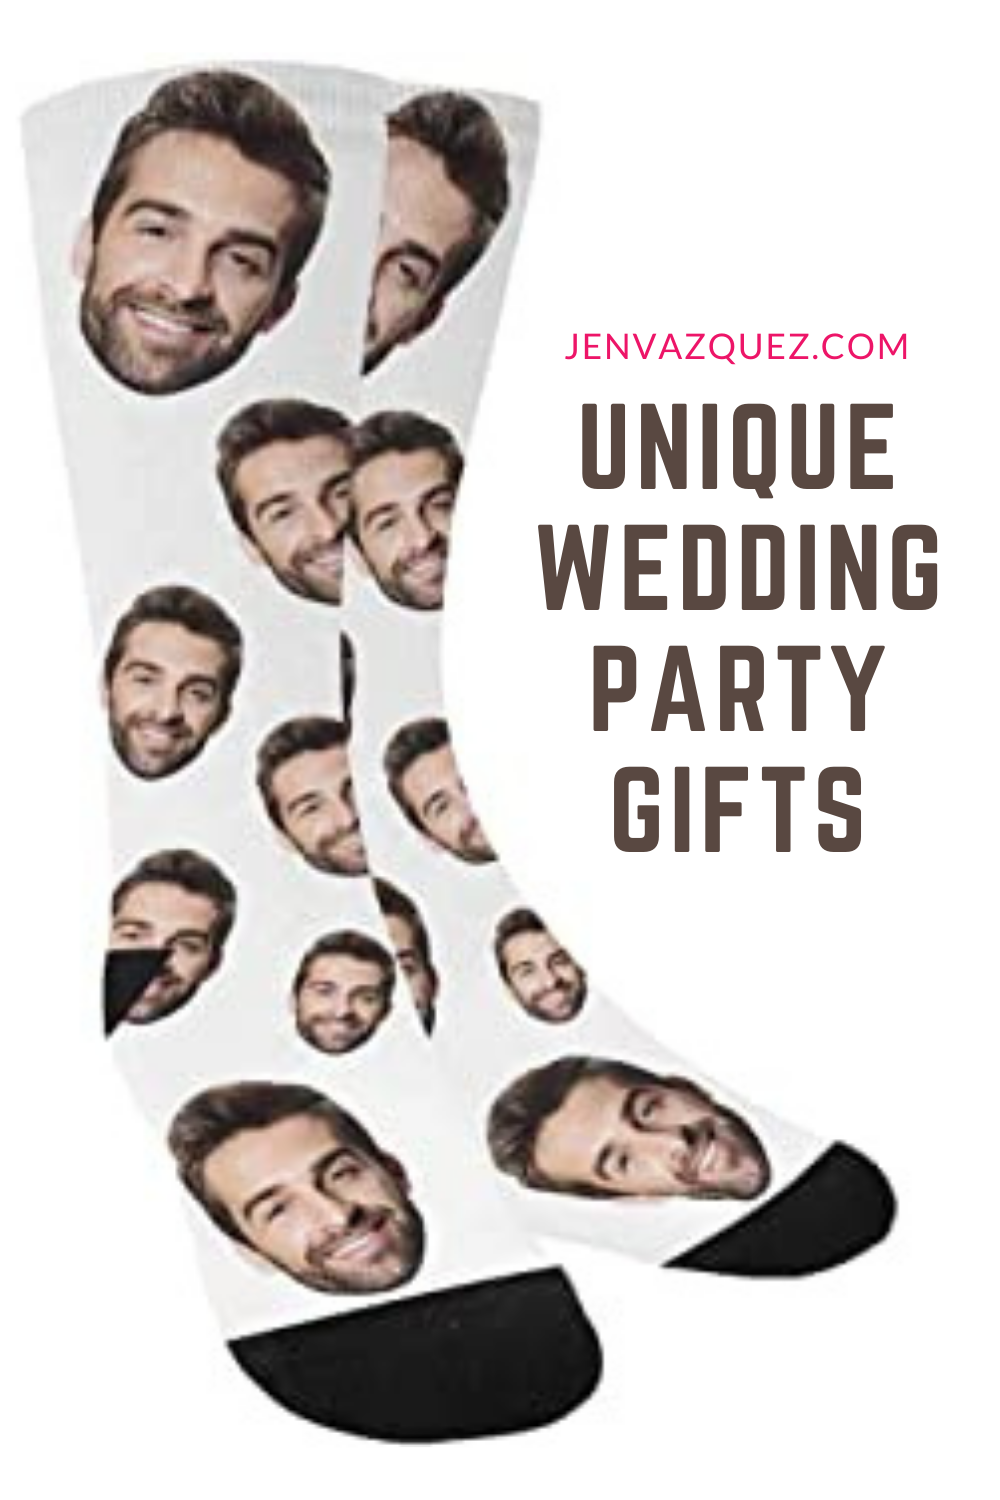 socks for your bridal party with images of you two on them